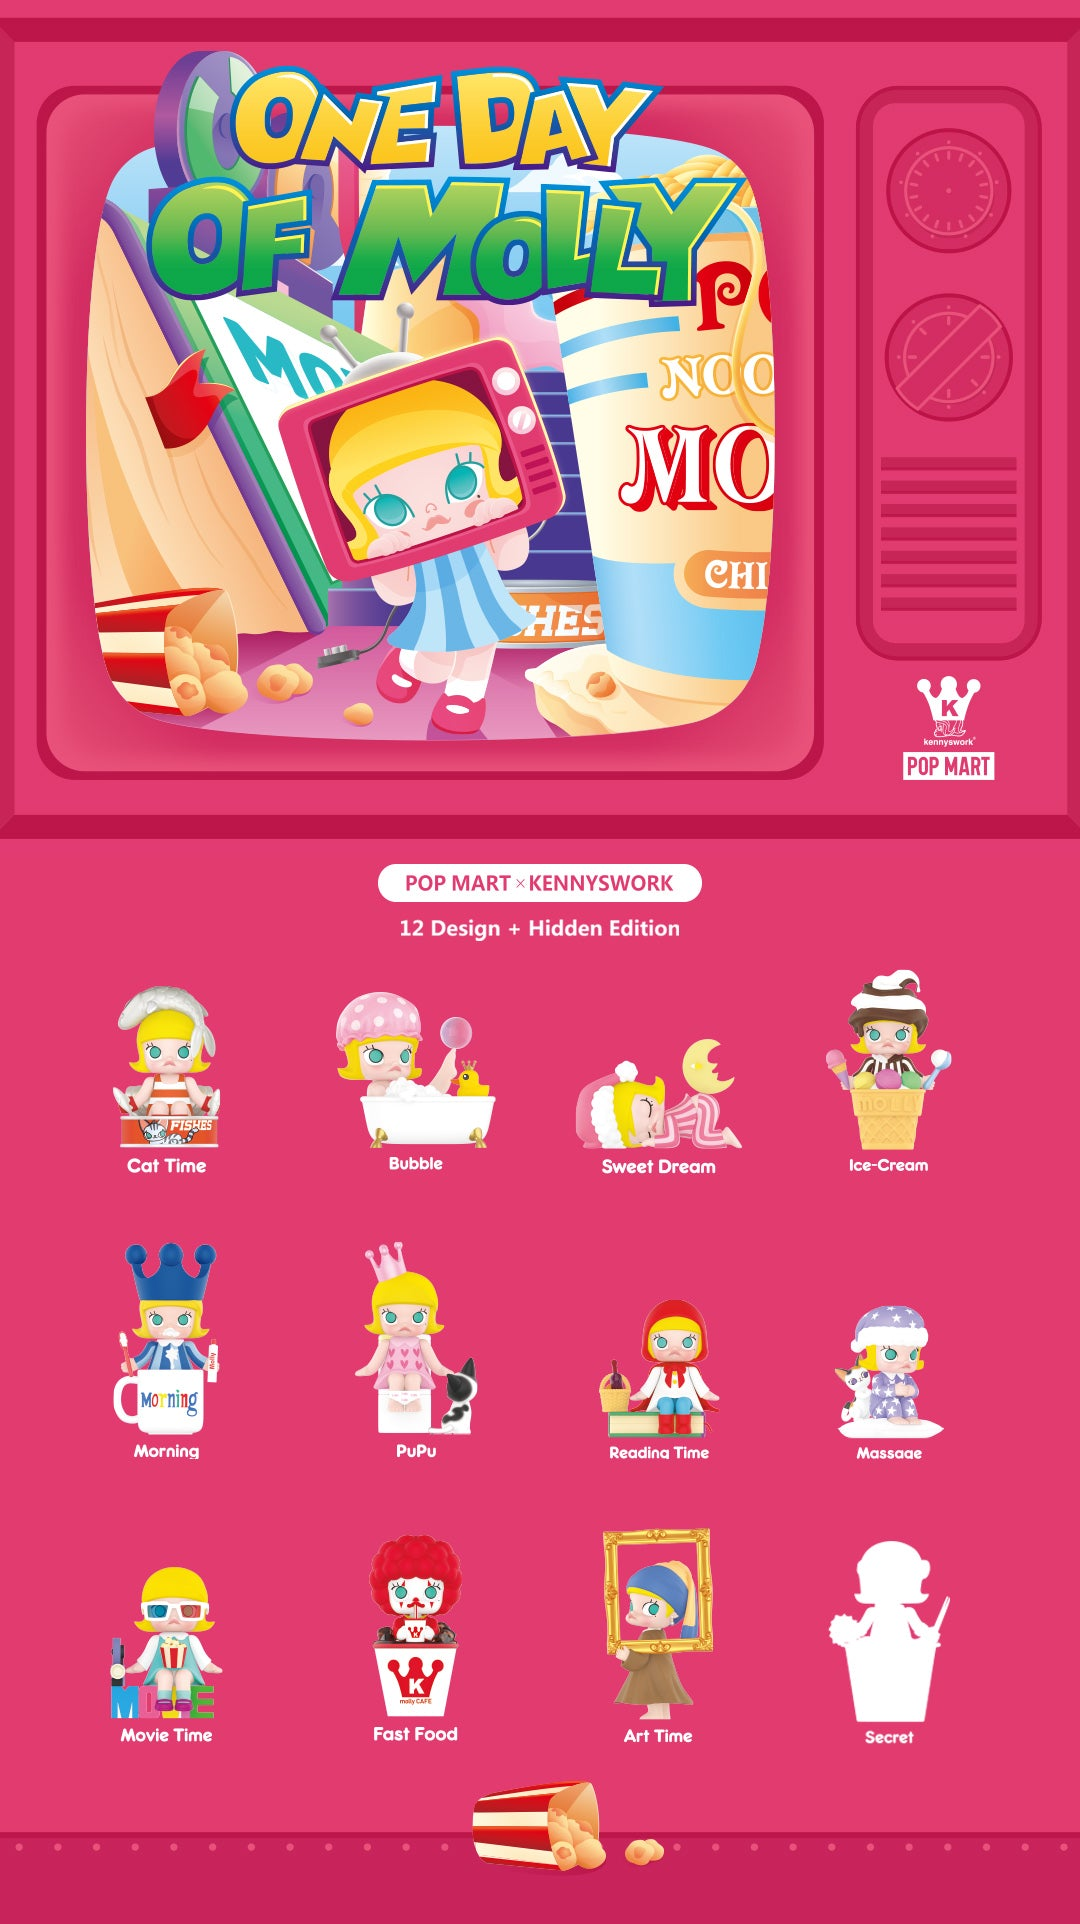 「PRE-ORDER」POP MART X Molly One Day of Molly Blind Box Toys